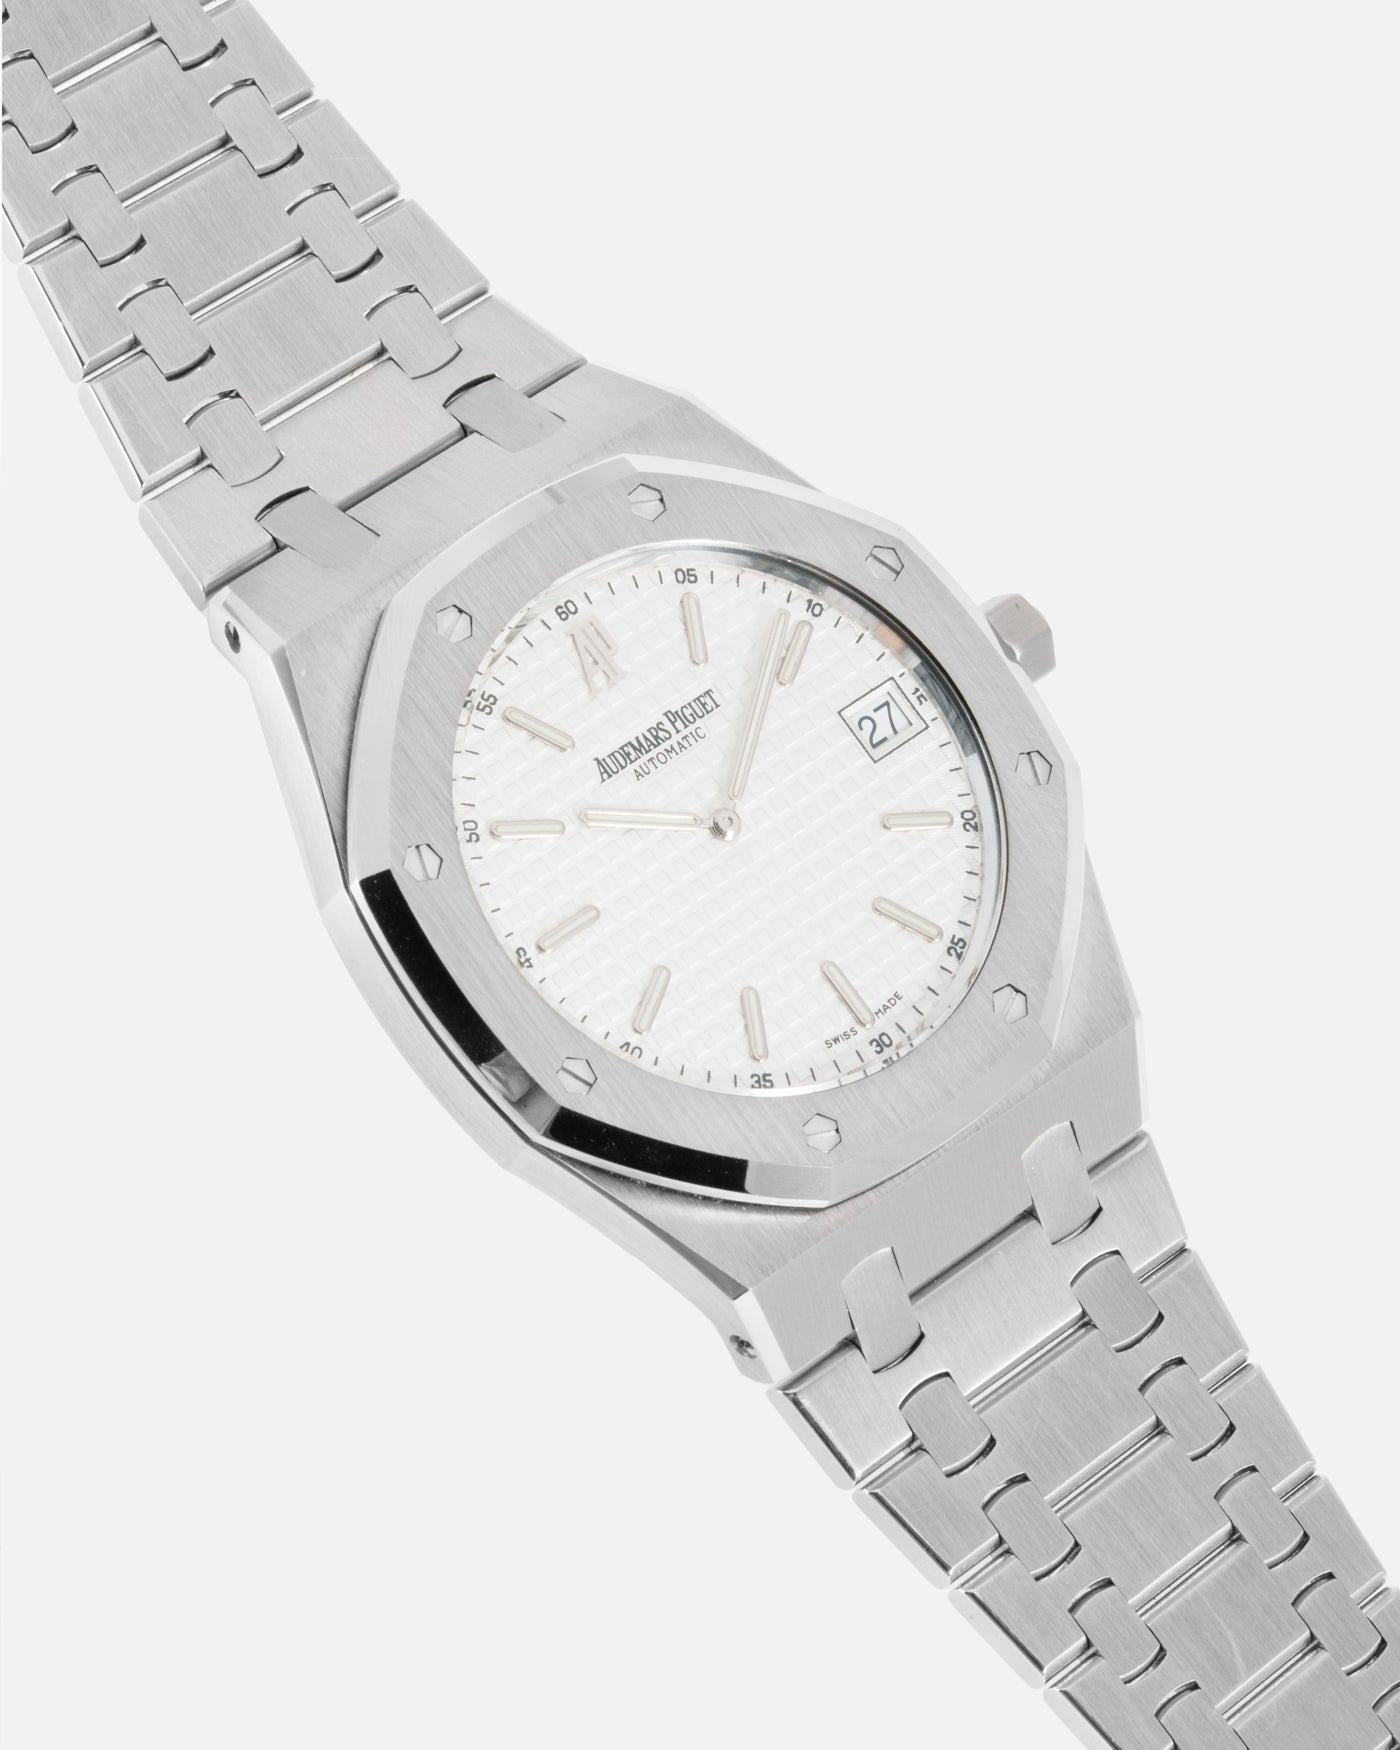 Audemars Piguet Royal Oak 15202 Jumbo 'White'